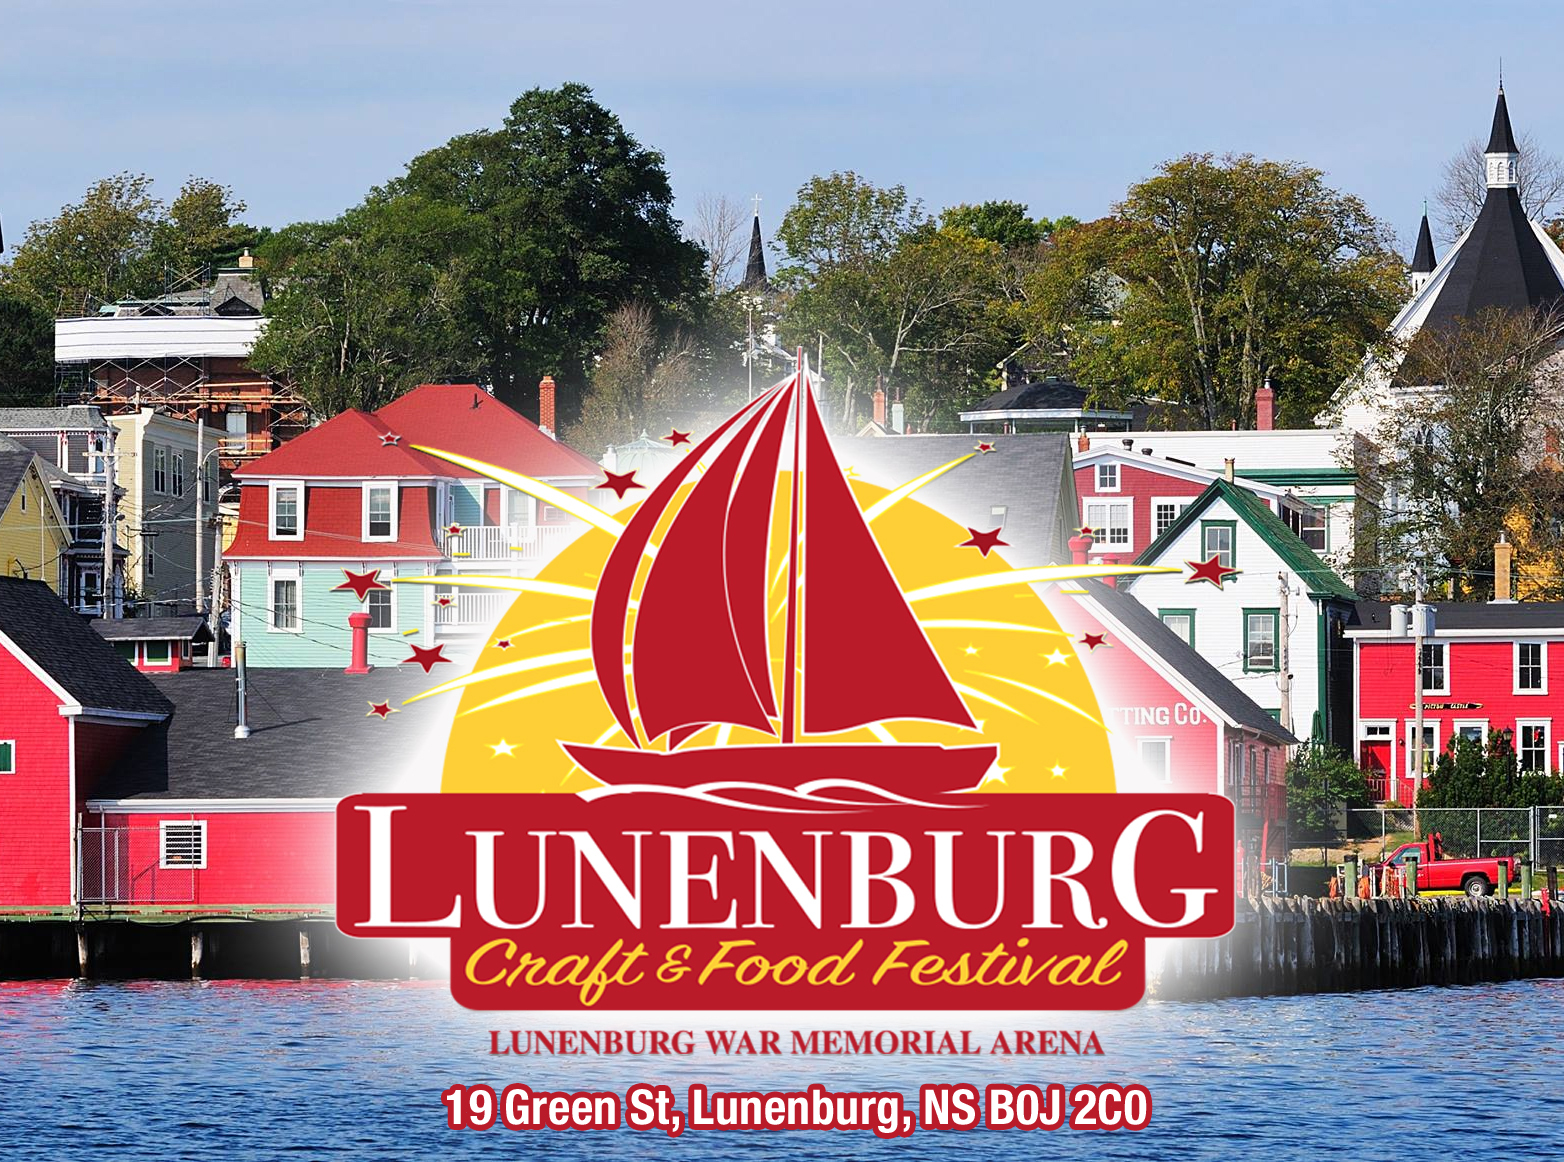 The 45th Annual Lunenburg Craft and Food Festival